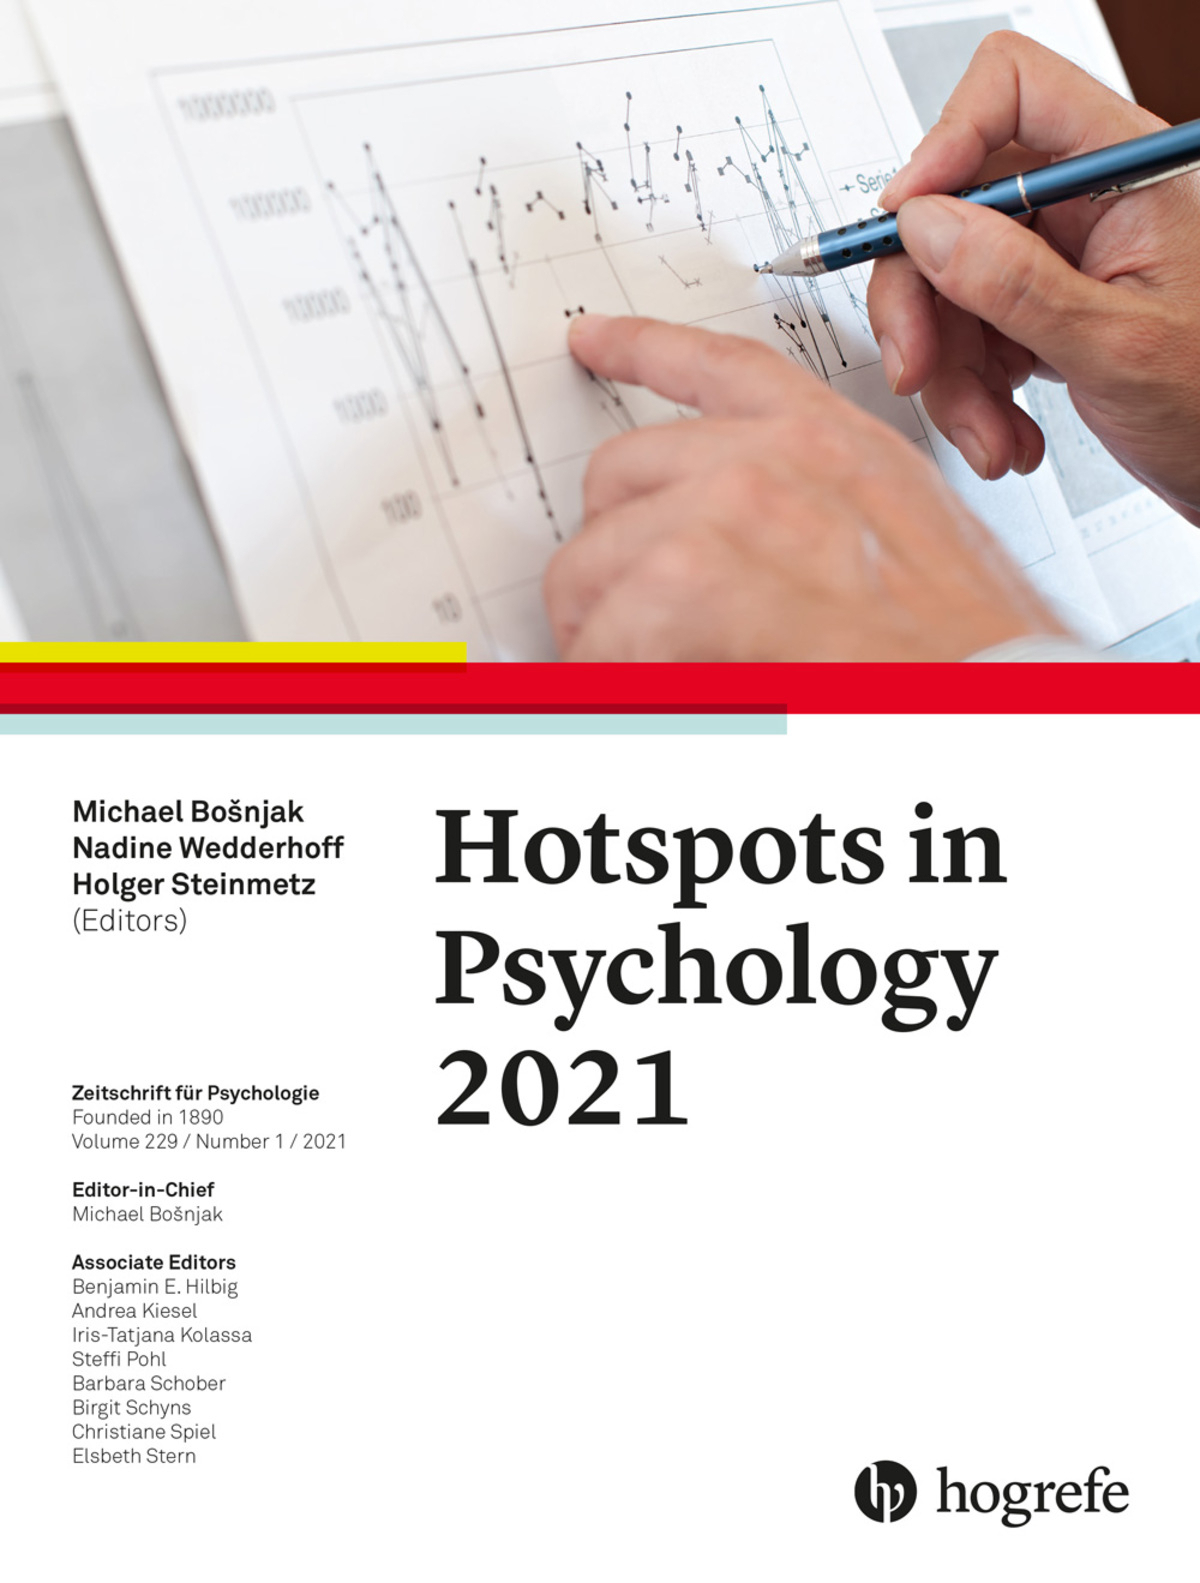 Hotspots in Psychology 2021